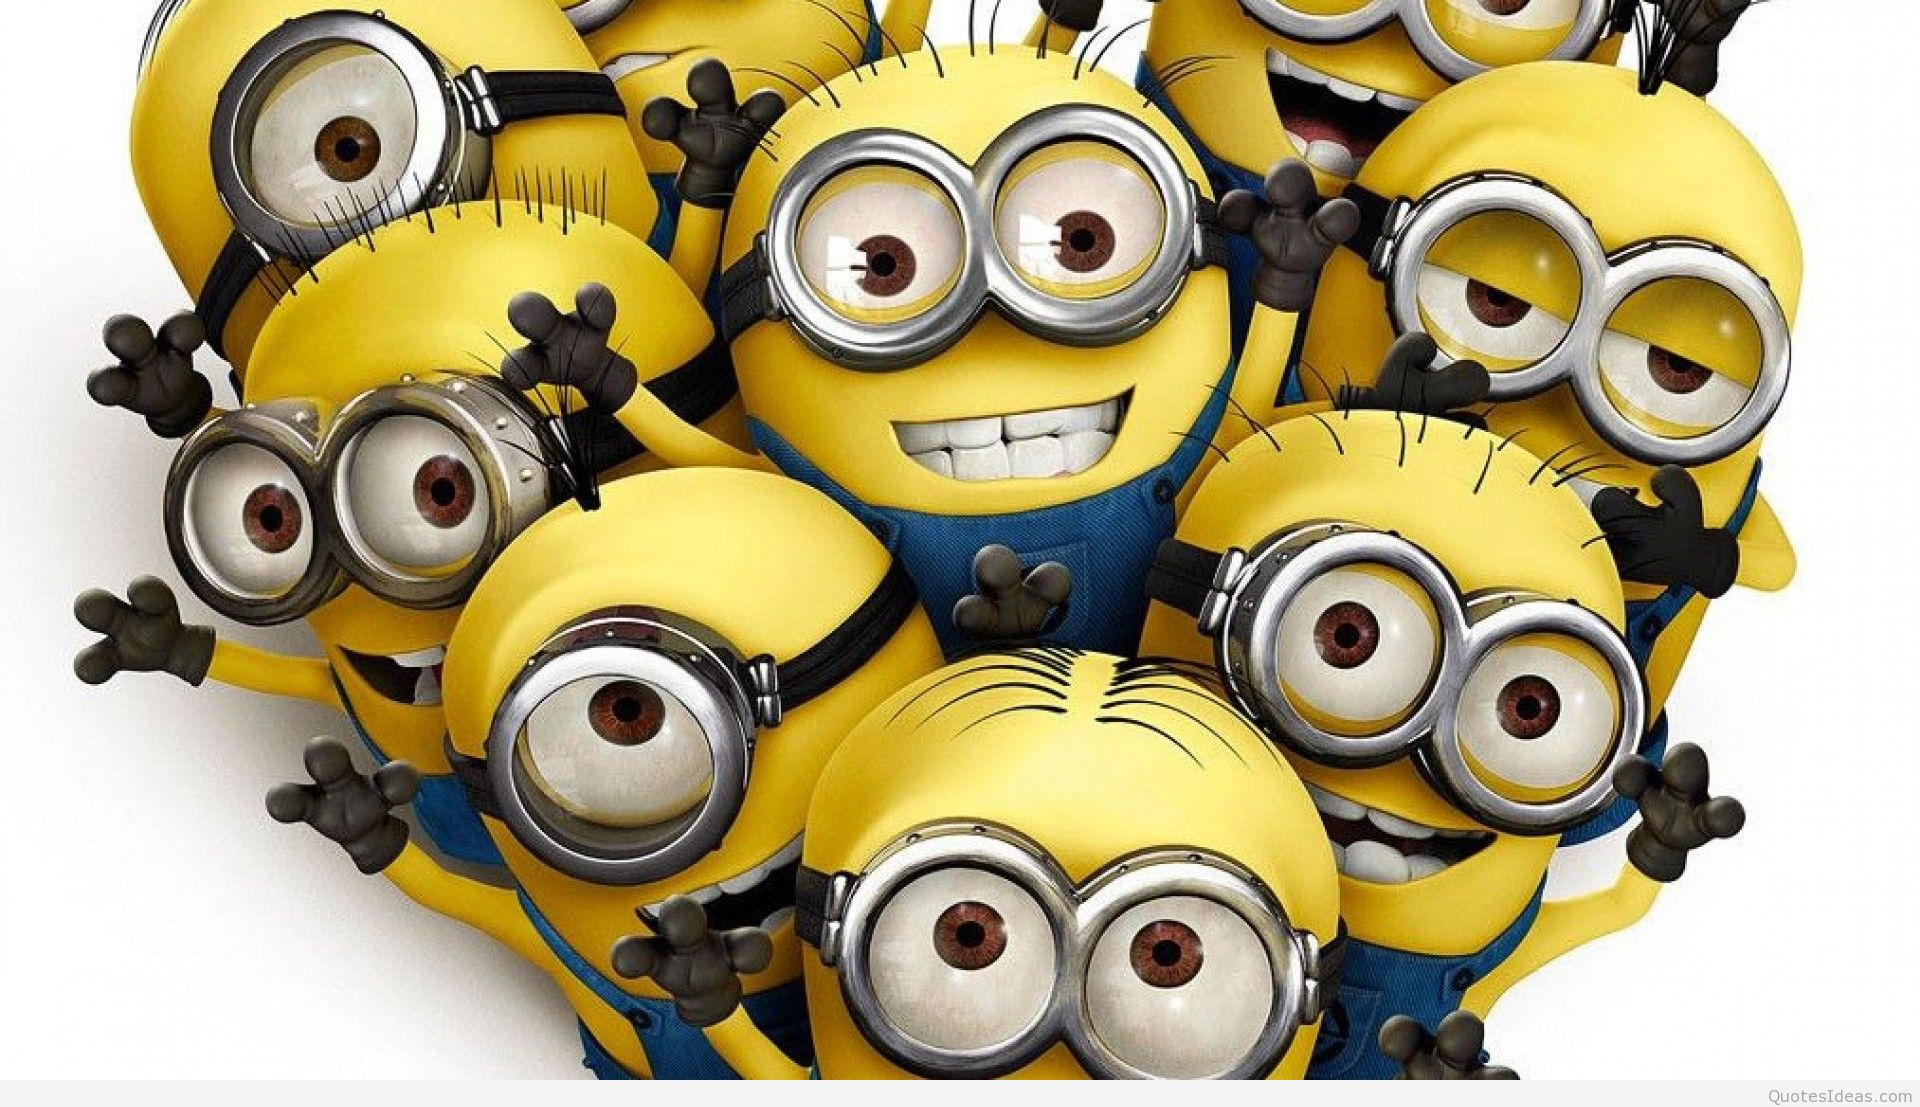 Despicable-Me-Minions-%C3%97-Minions-wallpaper-wpc5804094